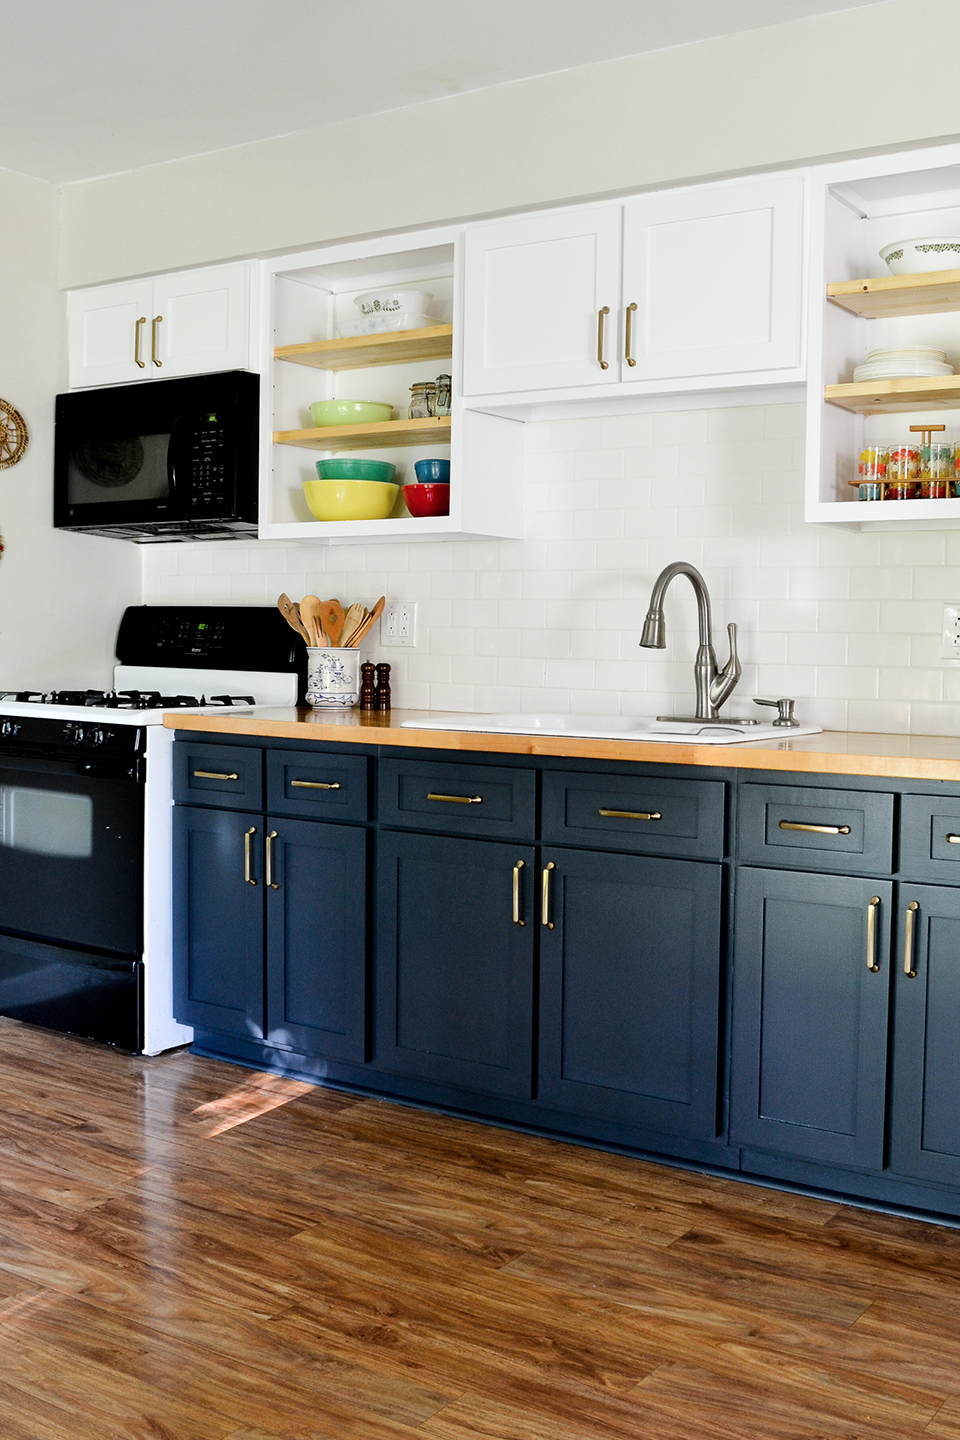 Best 5 Low Cost Ideas For A Kitchen Remodel On A Budget With 400 x 300